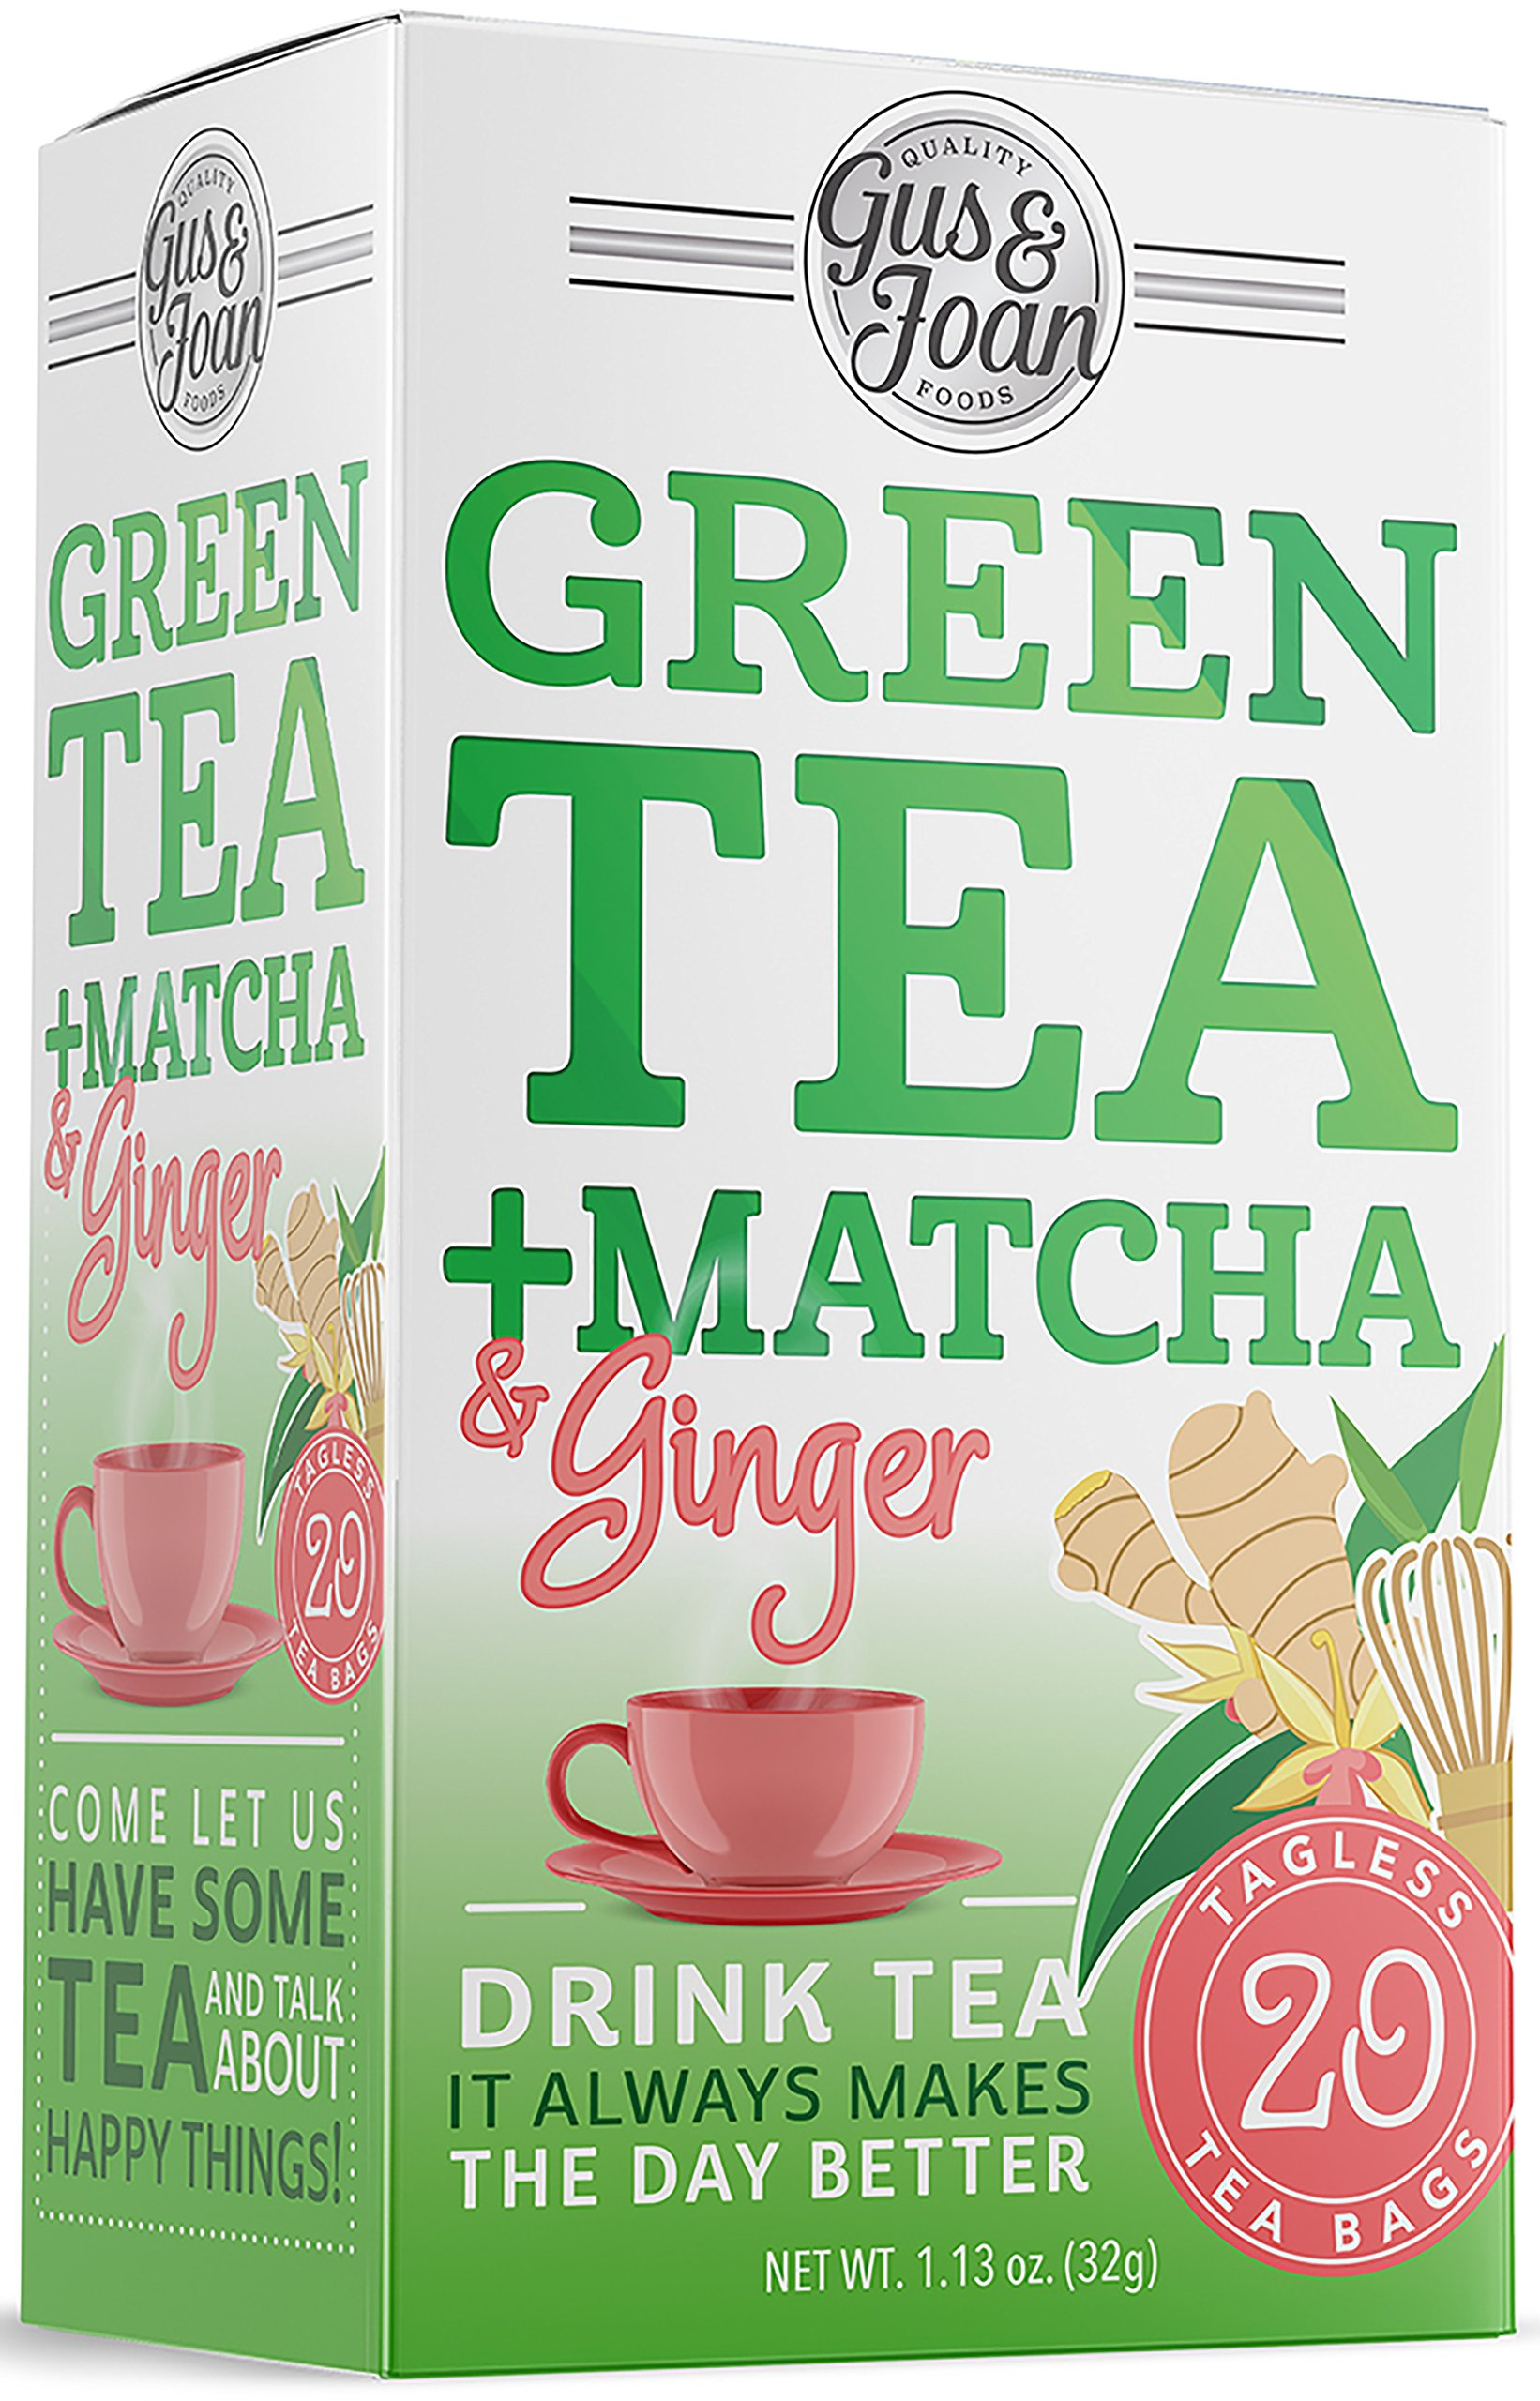 Gus and Joan Green Tea, Ginger and Matcha, (Pack of 3), 60 Total Tea Bags